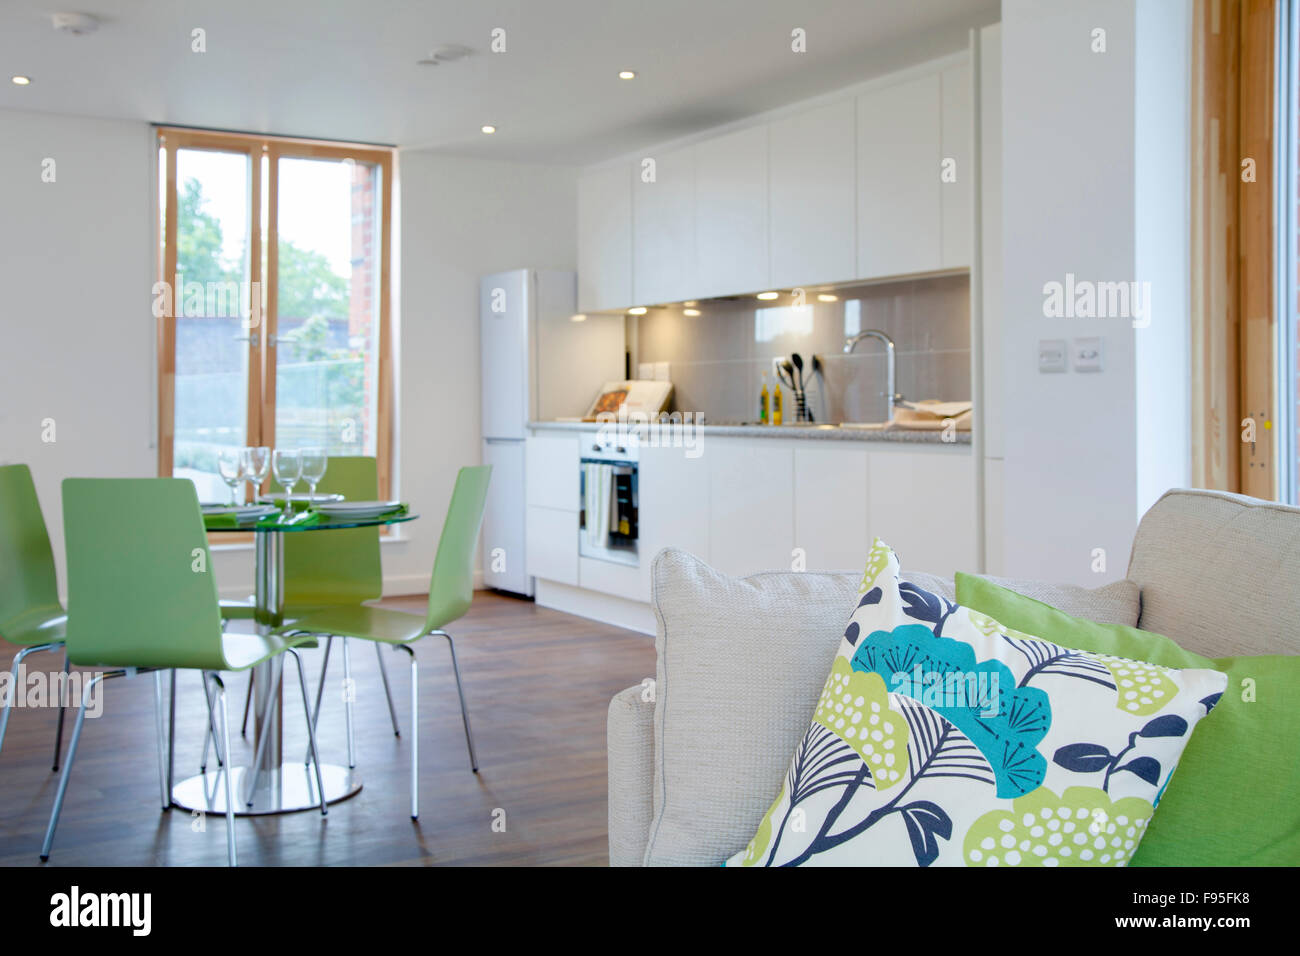 Modern church uk photos modern church uk images alamy - Appartement avec vue clifton aa interiors ...